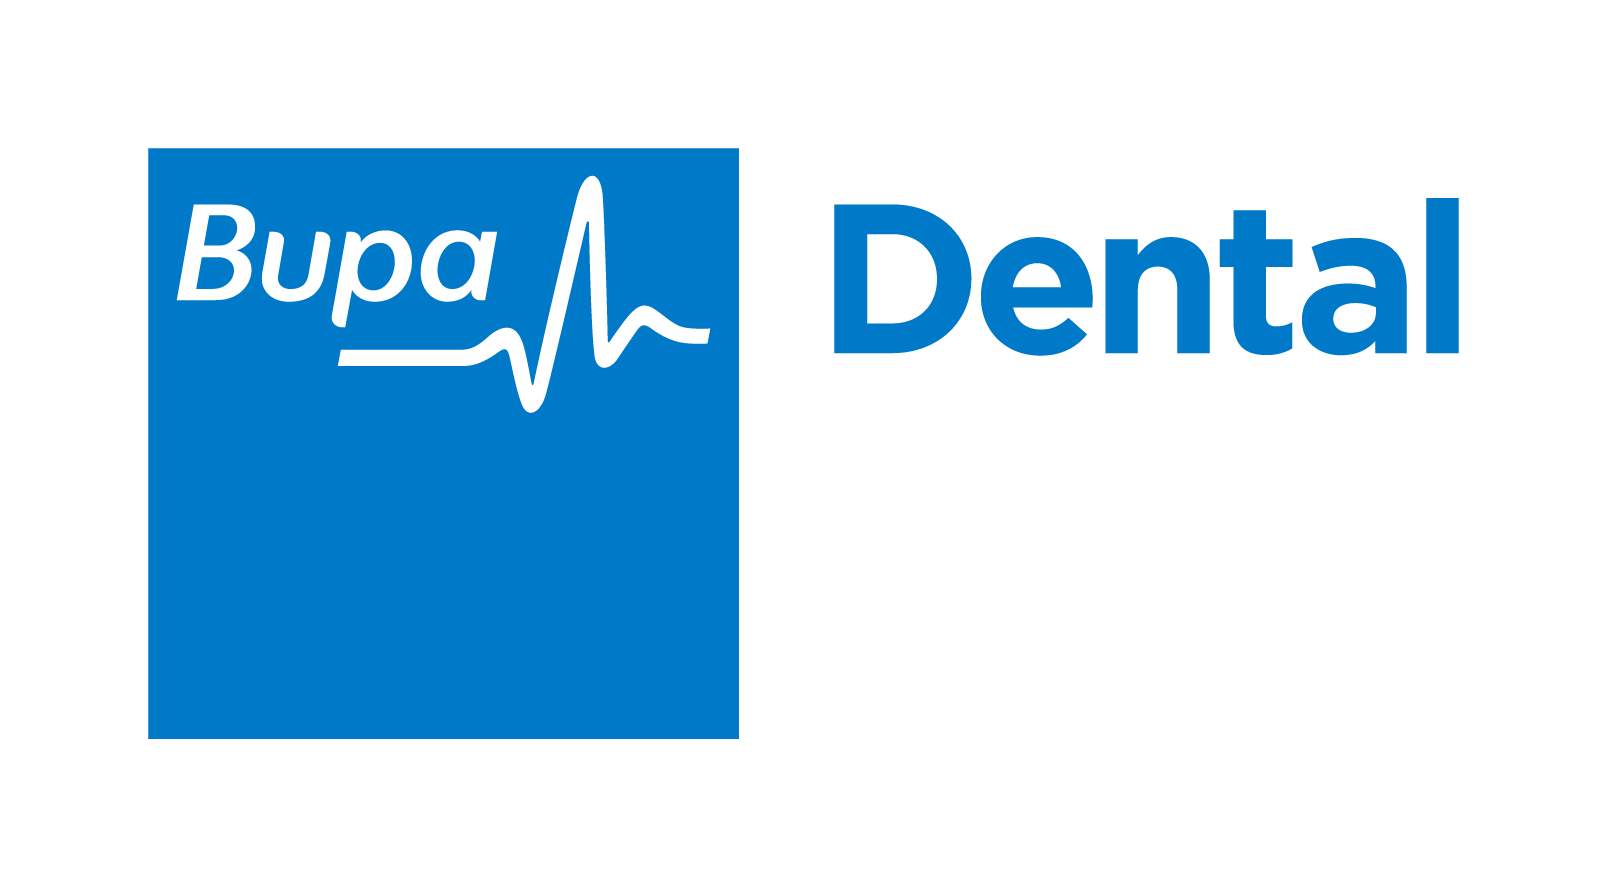 Bupa Dental appoints Edge as creative agency following a competitive pitch process